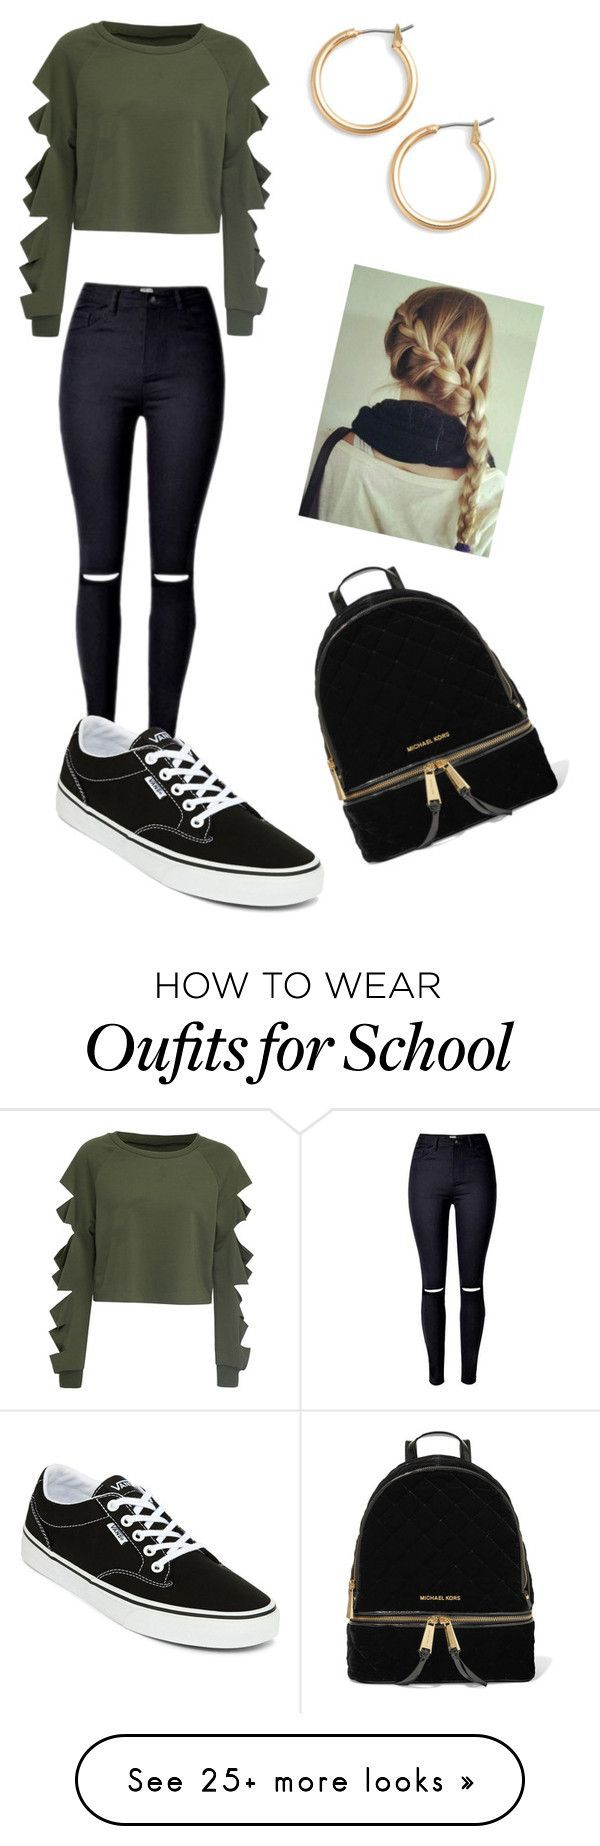 """School"" by gisselleotero on Polyvore featuring WithChic, Vans, Nordstrom and MI..."